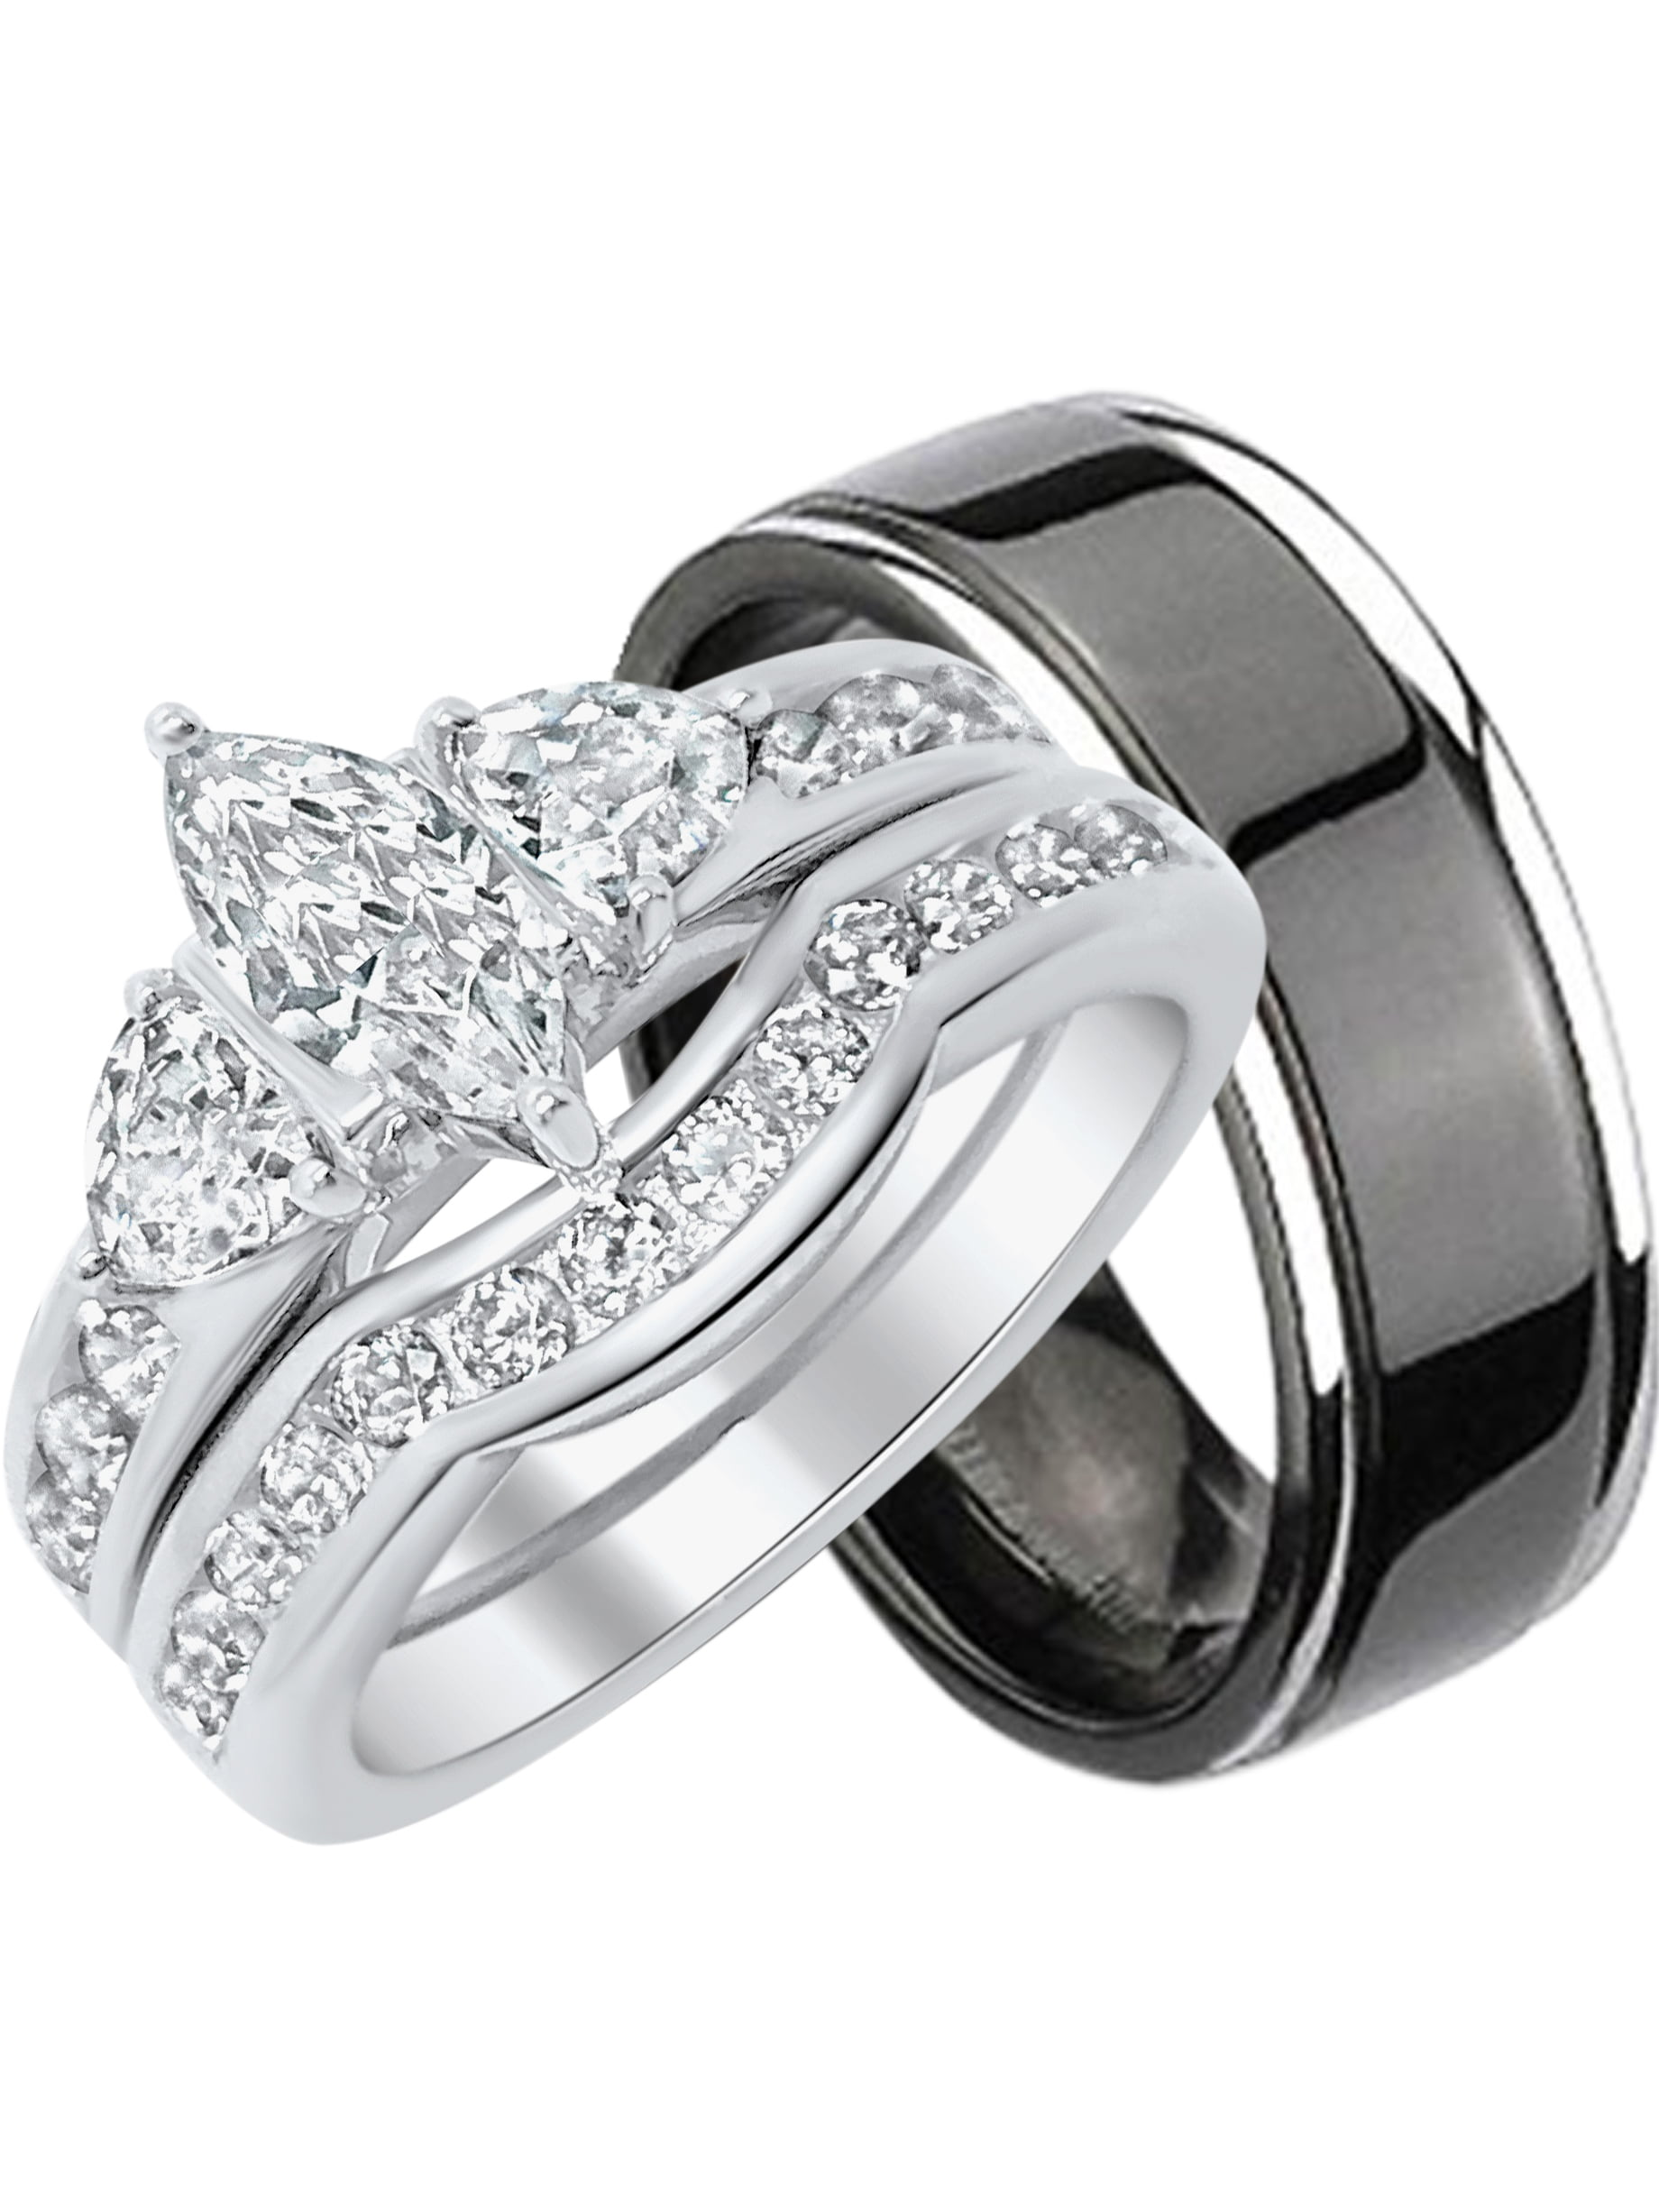 Laraso Co His Hers Cz Wedding Ring Set Sterling Matching